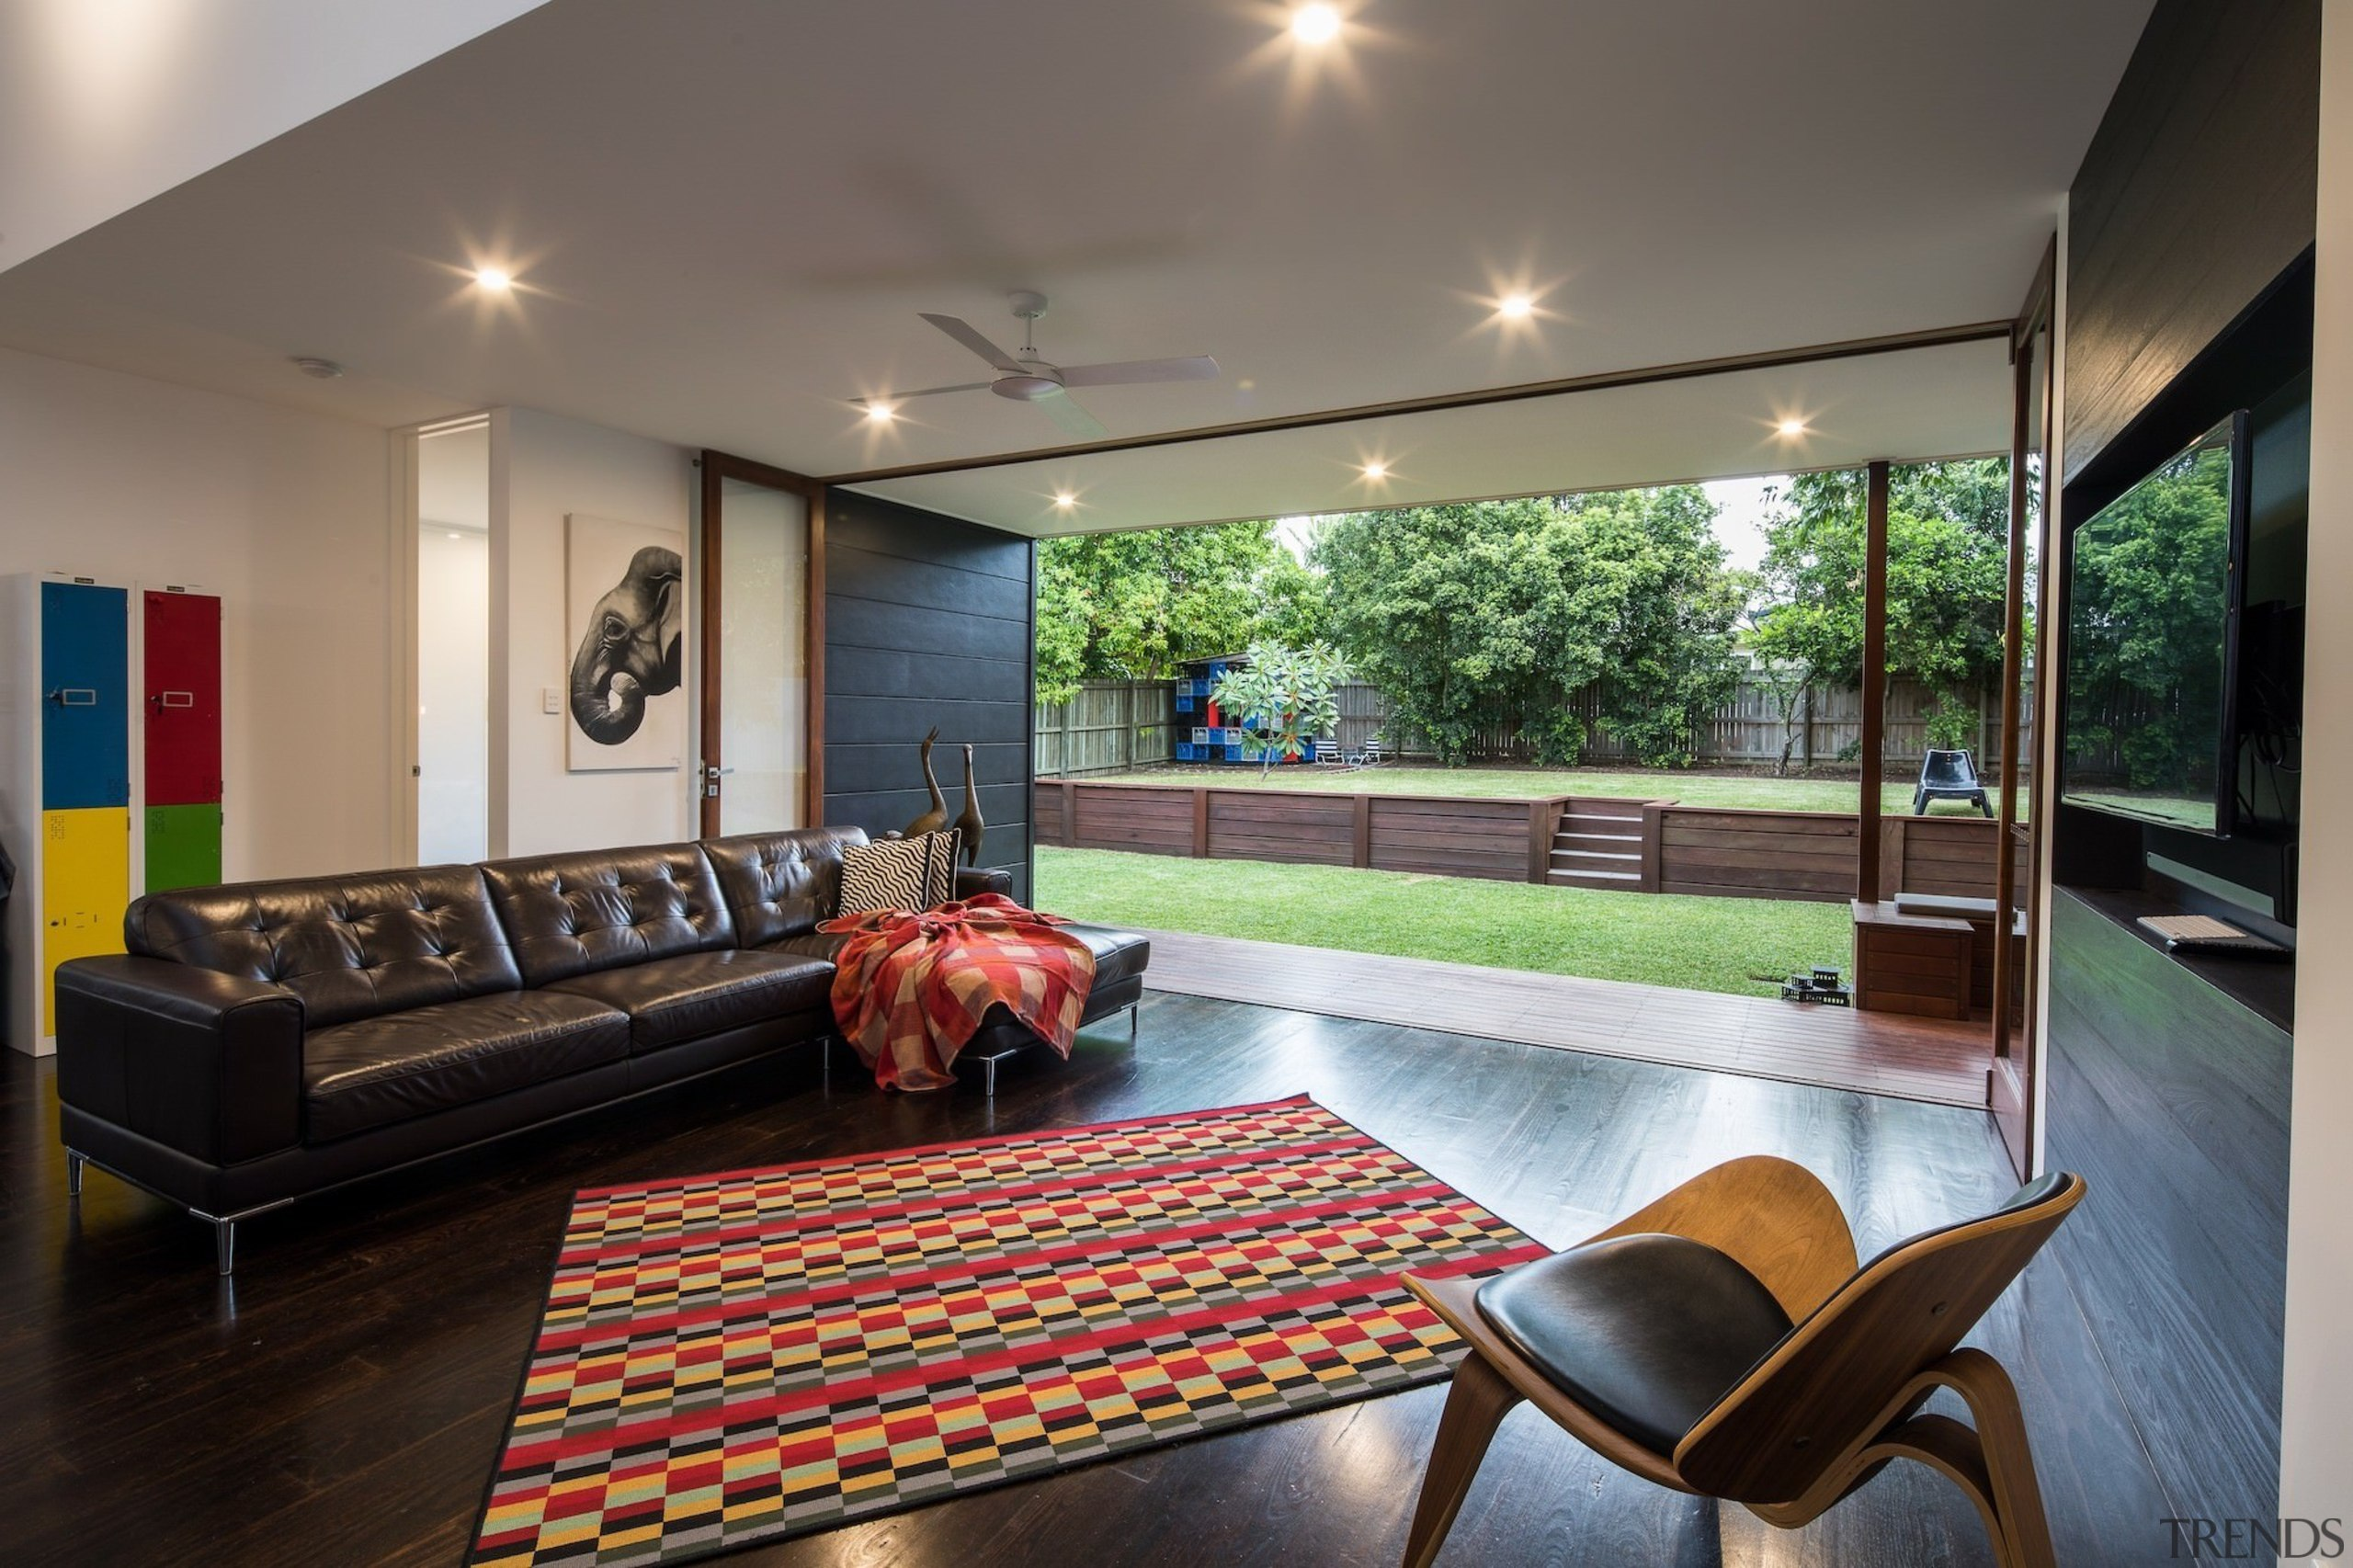 Architect: Blue Giraffe StudioPhotography by md photography architecture, ceiling, estate, house, interior design, living room, real estate, window, gray, black